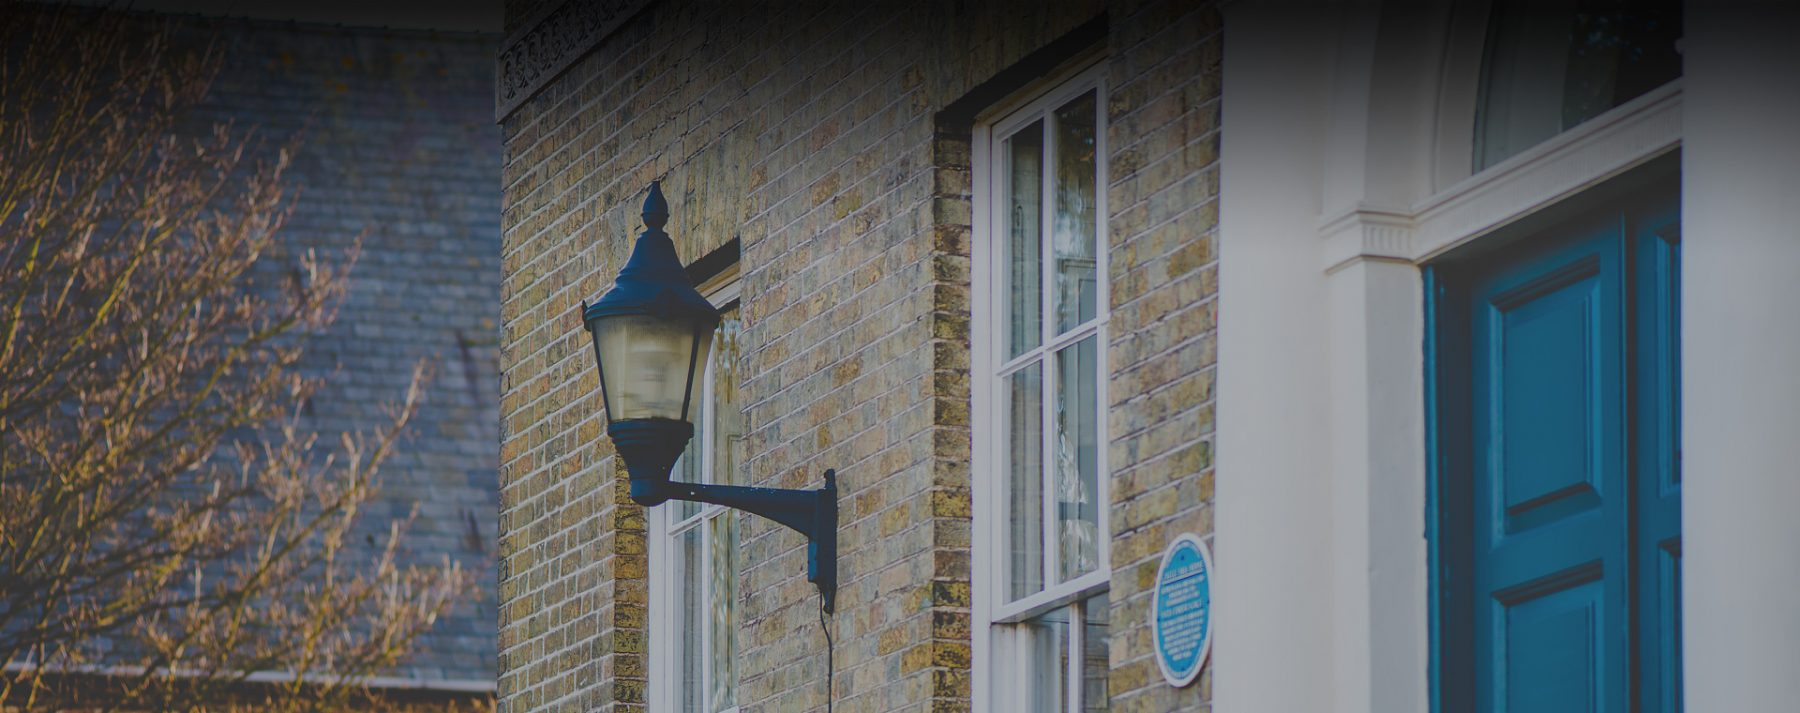 Halcyon Offices, Huntingdon, Castle Hill House, Serviced Office, Entrance Detail